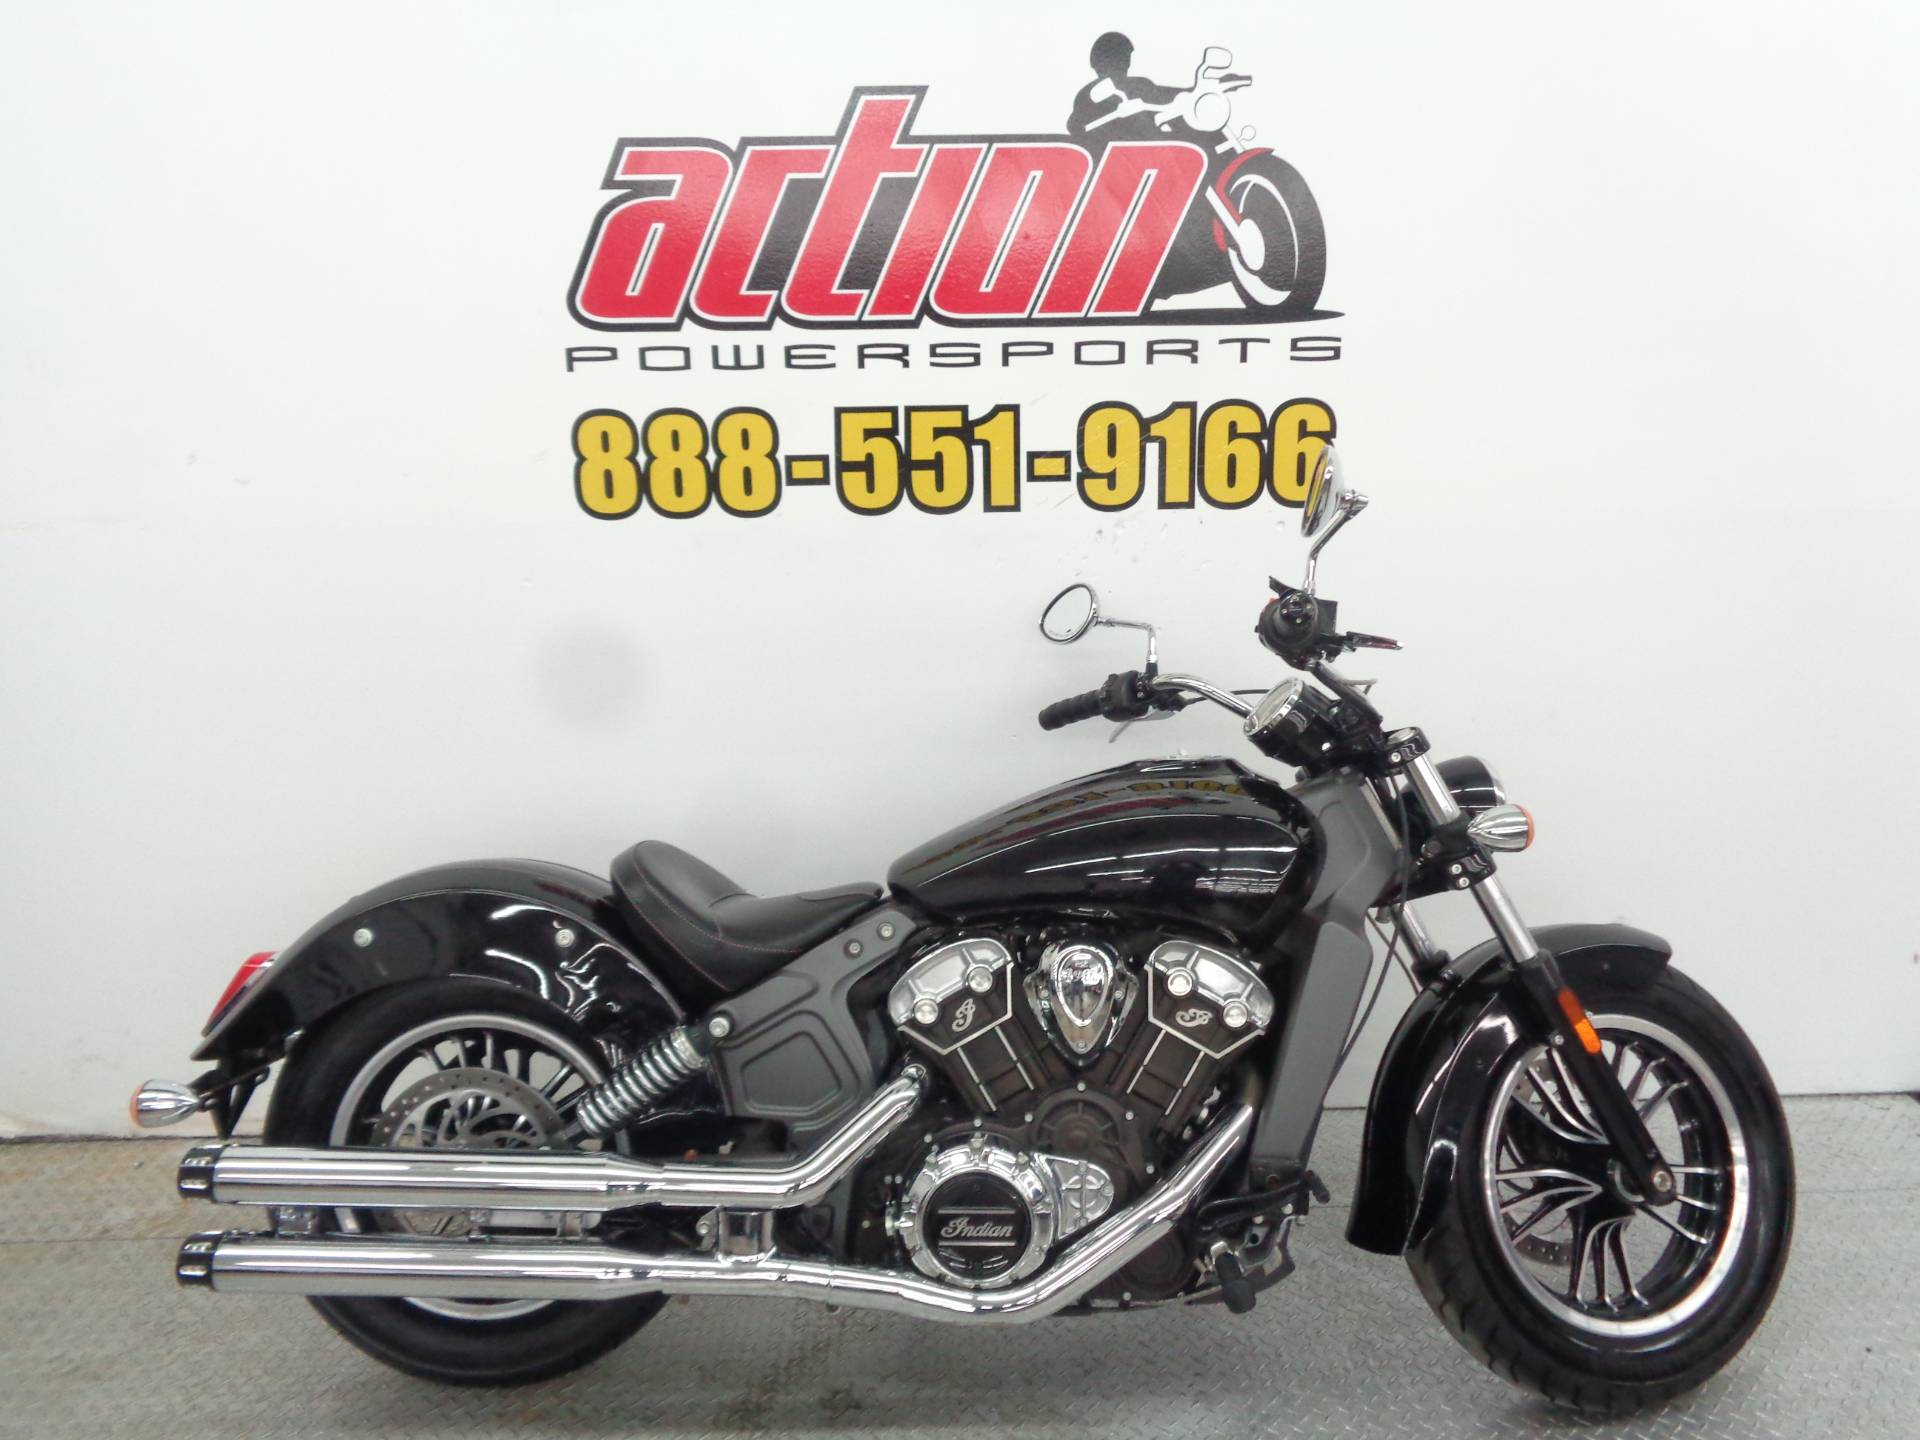 Used 2016 Indian Scout Motorcycles In Tulsa Ok Stock Number 116287